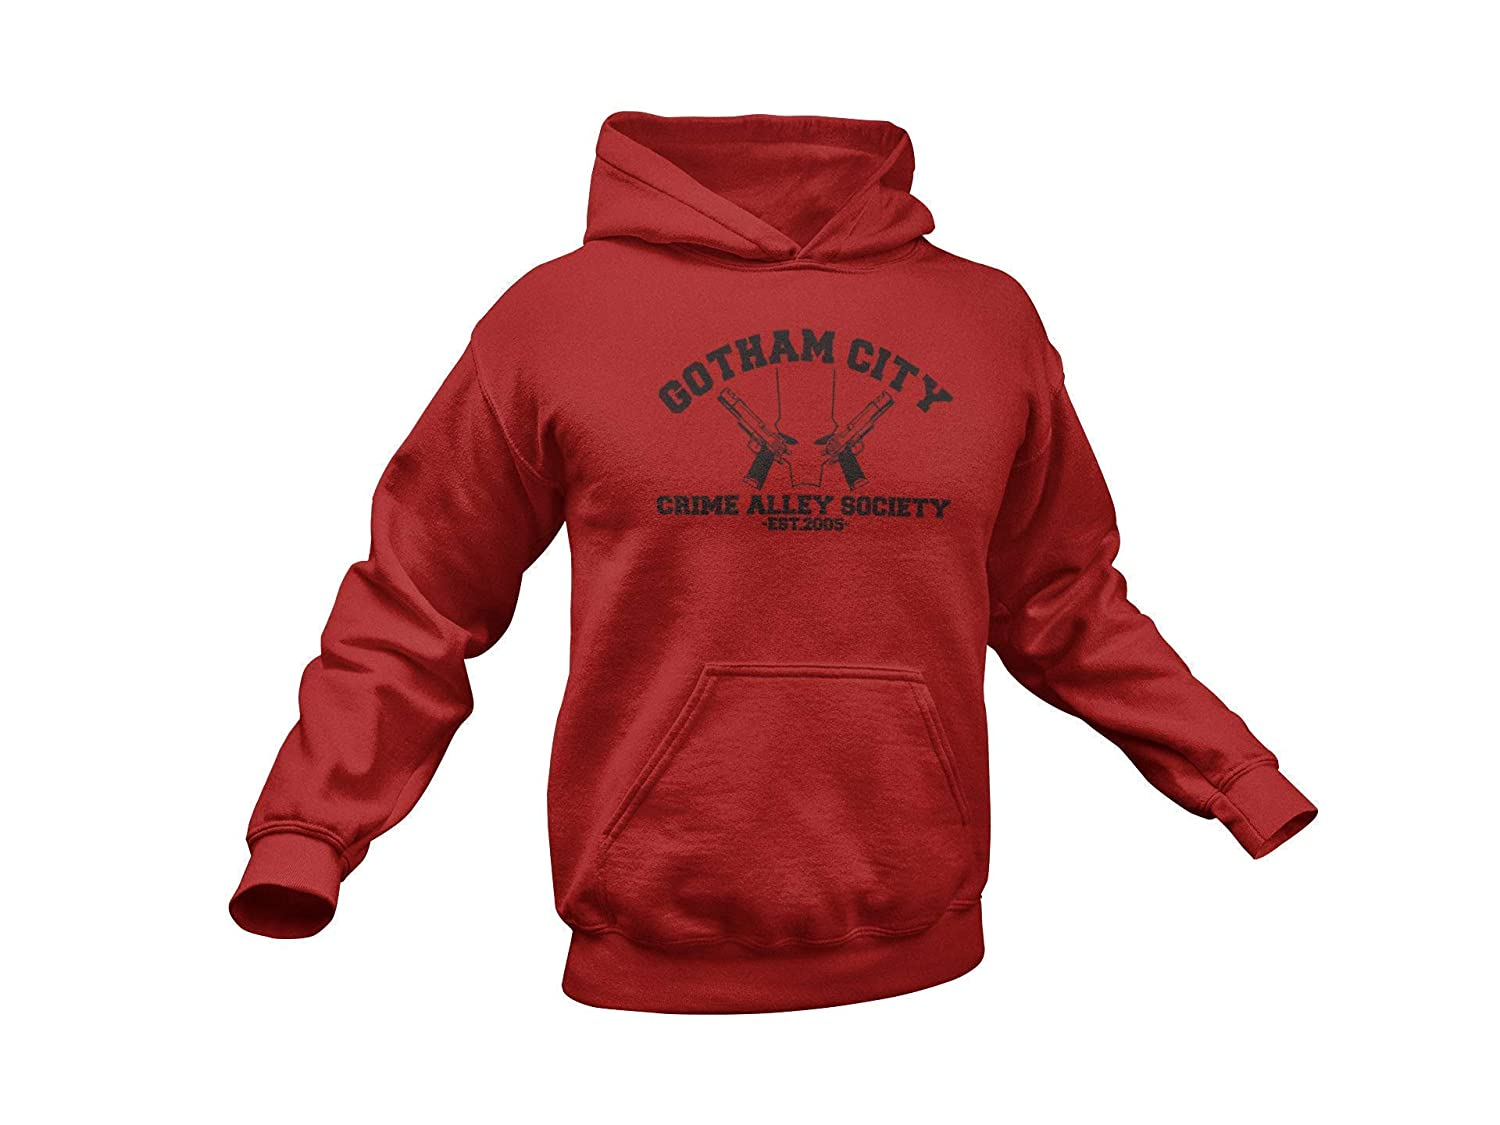 Red Hood Hoodie. Inspired High quality new Hoodie City Crime Alle We OFFer at cheap prices Gotham